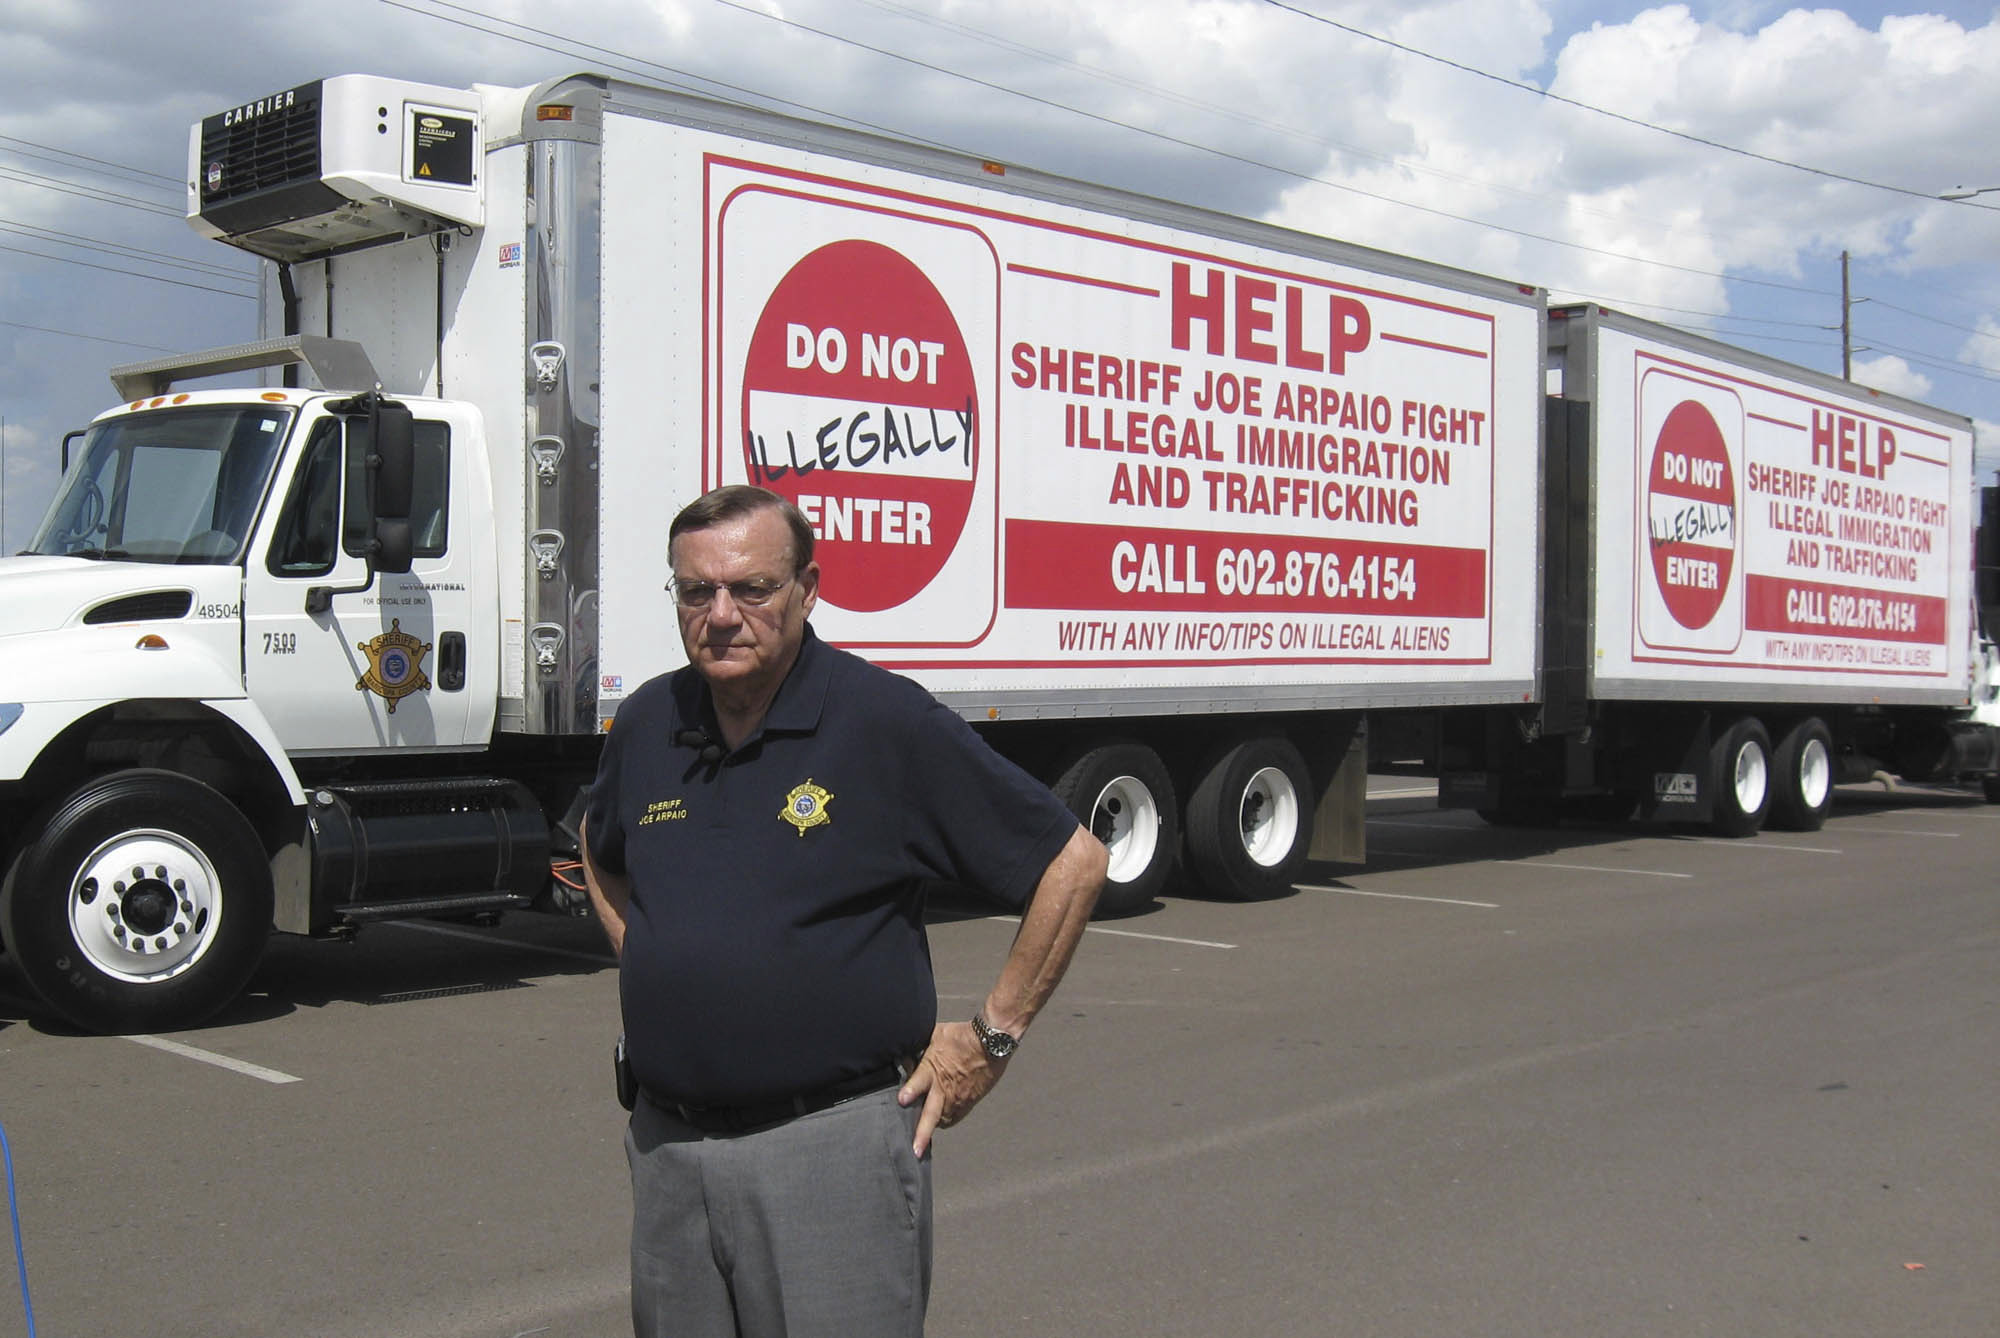 FILE--In this Sept. 16, 2007, file photo, Maricopa County Sheriff Joe Arpaio shows off vehicles advertising a hotline to report undocumented immigrants in Phoenix, Ariz. Arpaio has been convicted of a criminal charge Monday, July 31, 2017, for disobeying a court order to stop traffic patrols that targeted immigrants in a conviction that marks a final rebuke for the former sheriff and politician who once drew strong popularity from such crackdowns but was booted from office amid voter frustrations over his deepening legal troubles. (Larry Fehr-Snyder/Arizona Republic via AP, file)